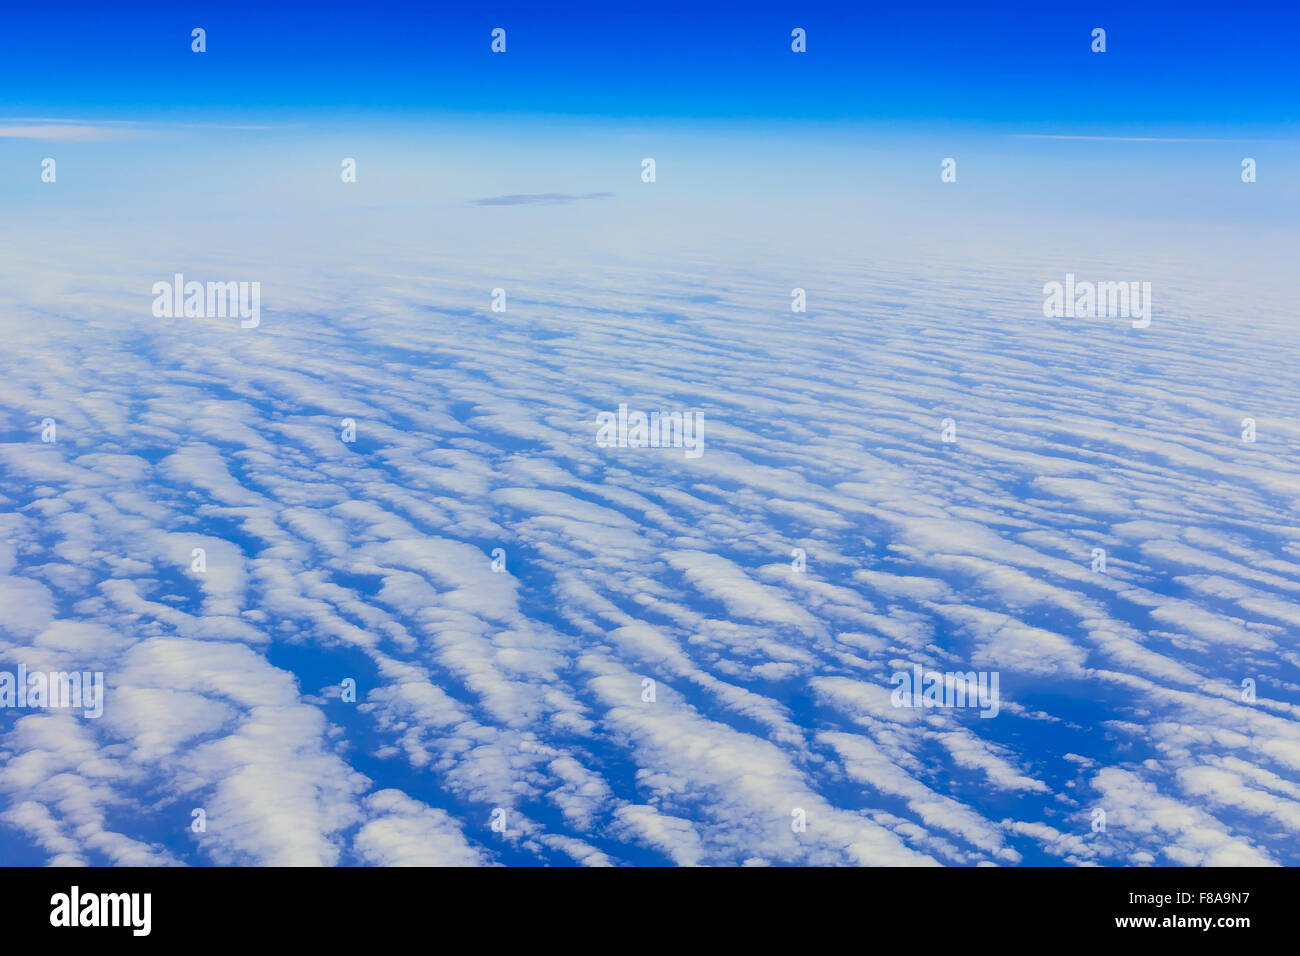 View on blue sky above white clouds from the window of airplane with skyline over ocean Stock Photo